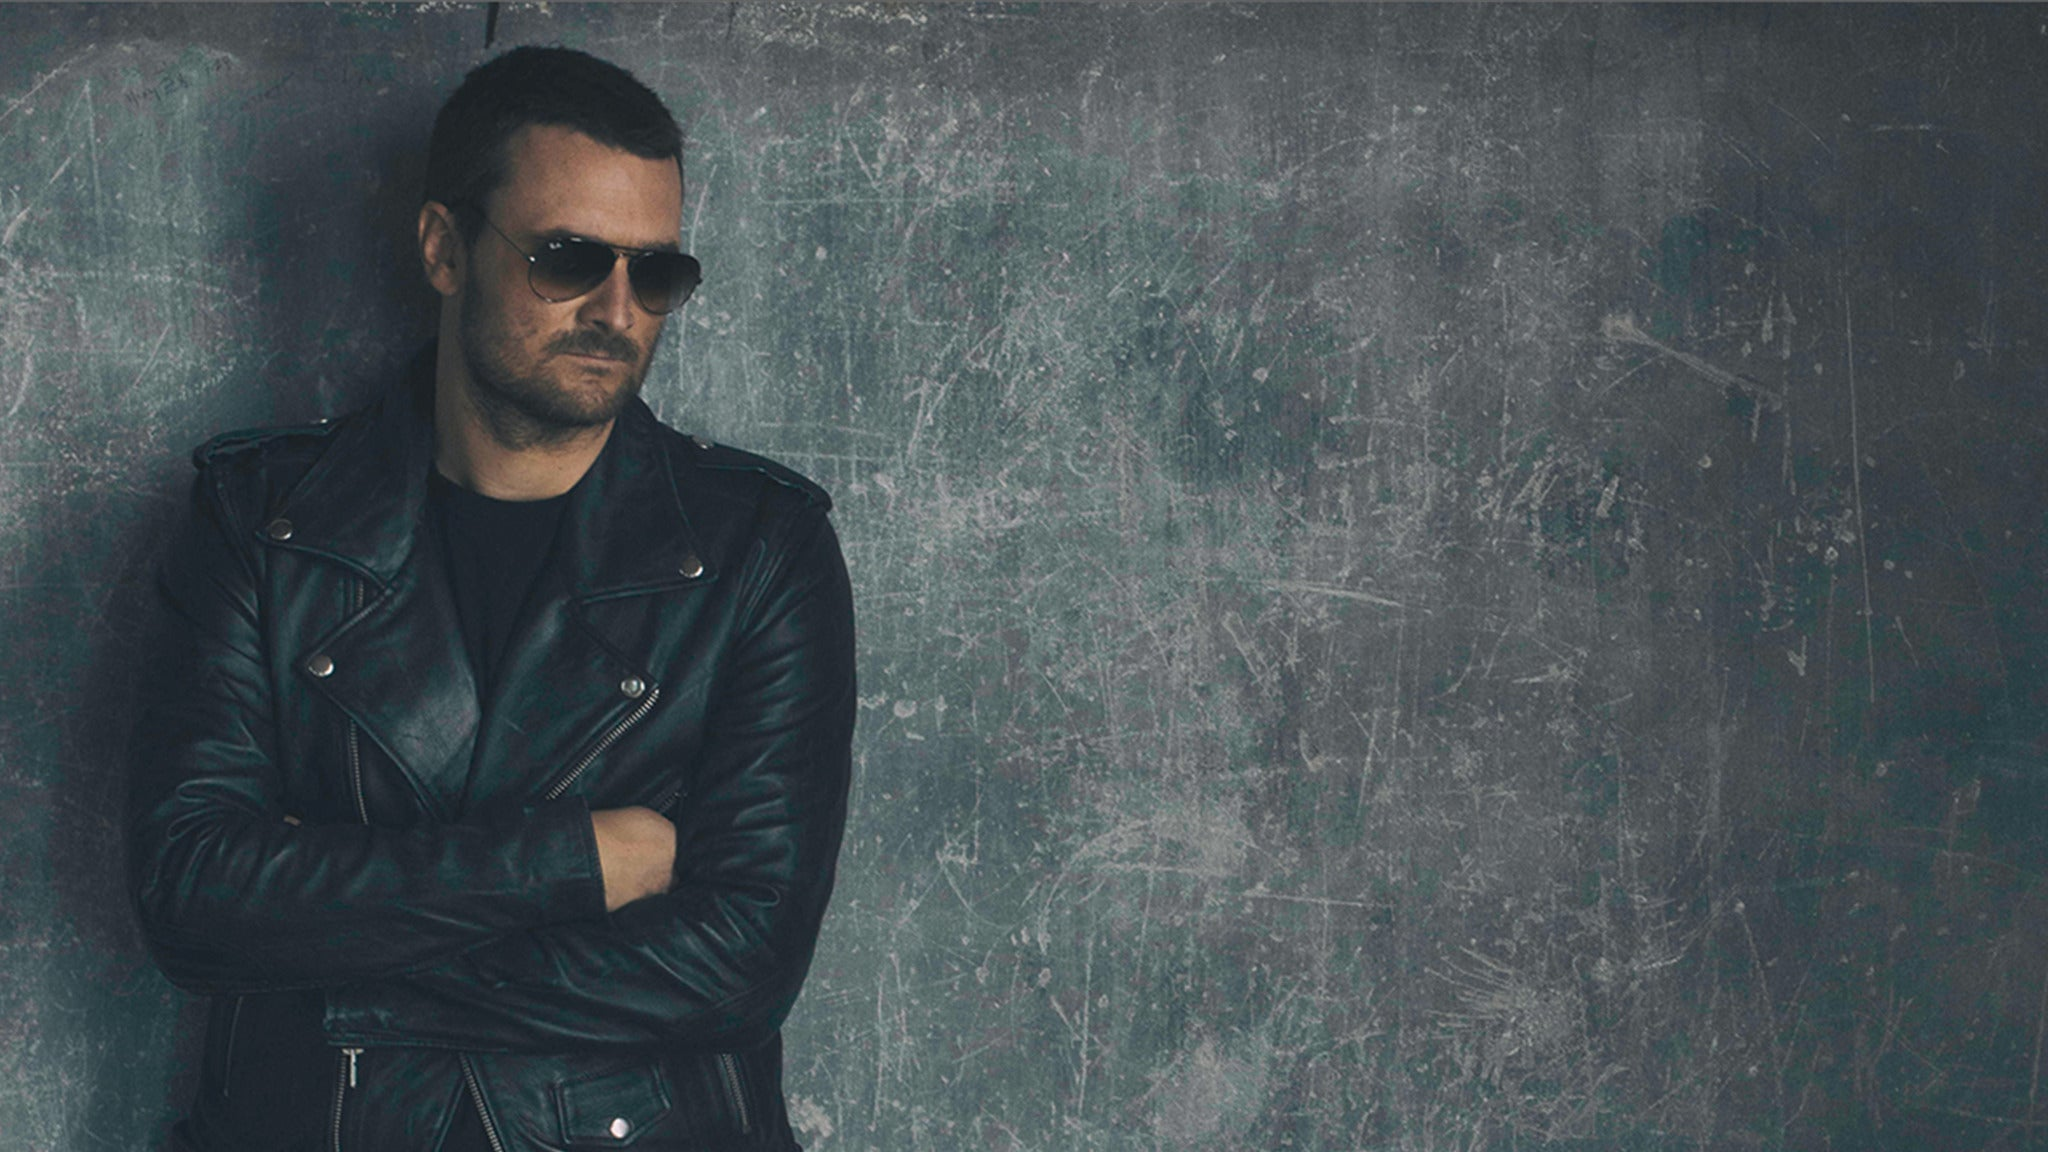 Eric Church - Holdin' My Own Tour at Bankers Life Fieldhouse